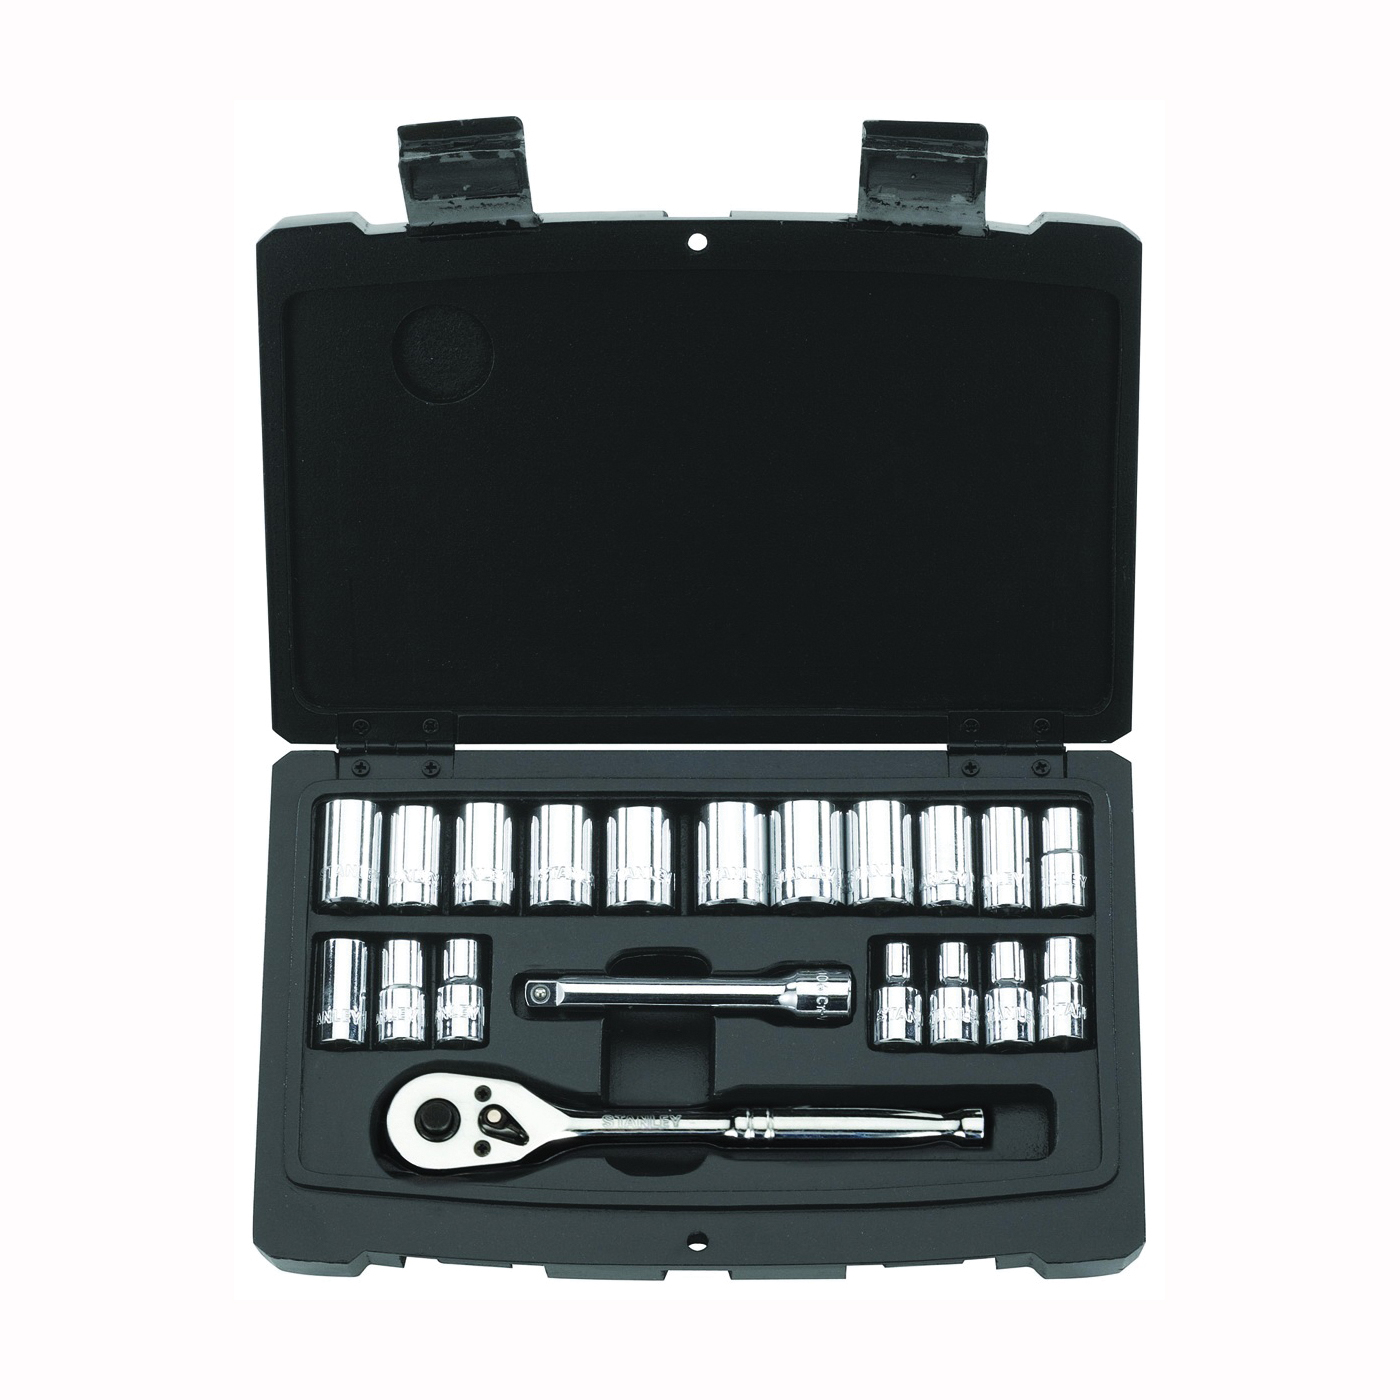 Picture of STANLEY 92-802 Socket Set, Steel, Chrome, Silver